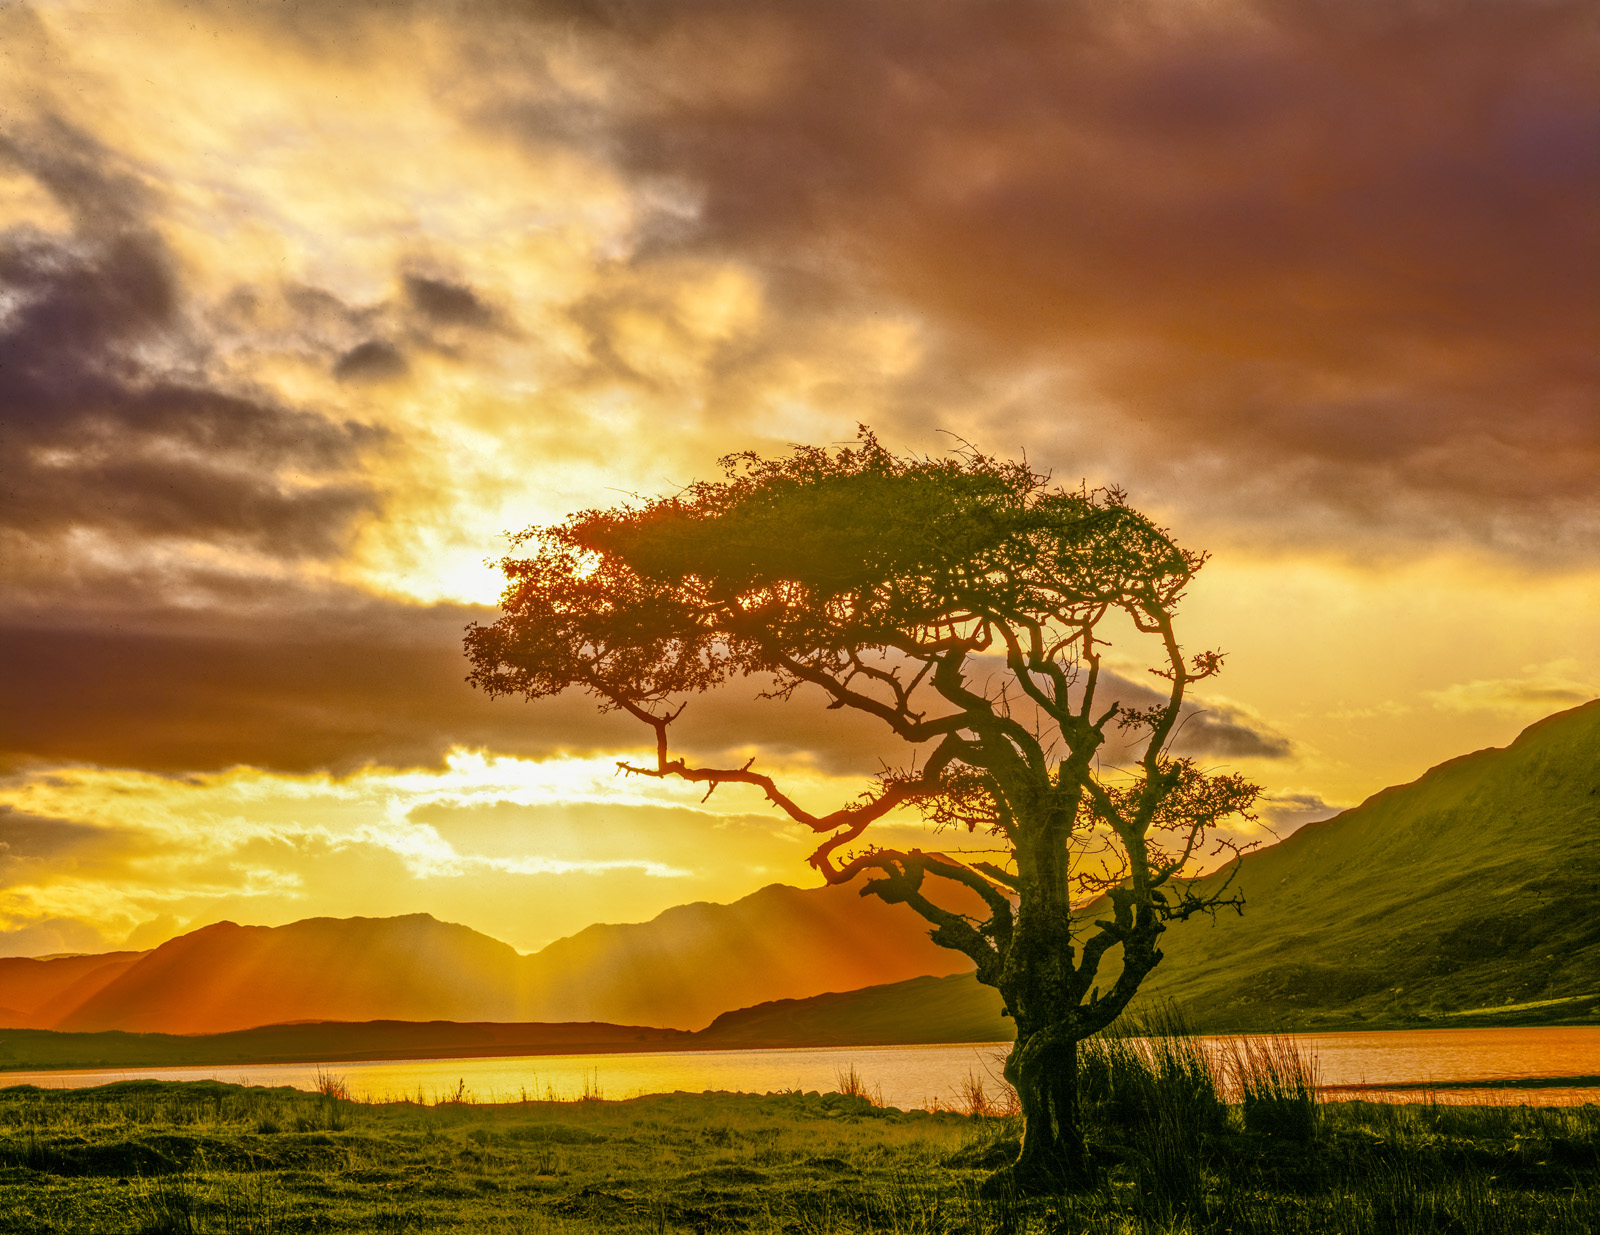 Myrtle tree at dawn, Connemara National Park, Republic of Ireland photographed by Tom Till